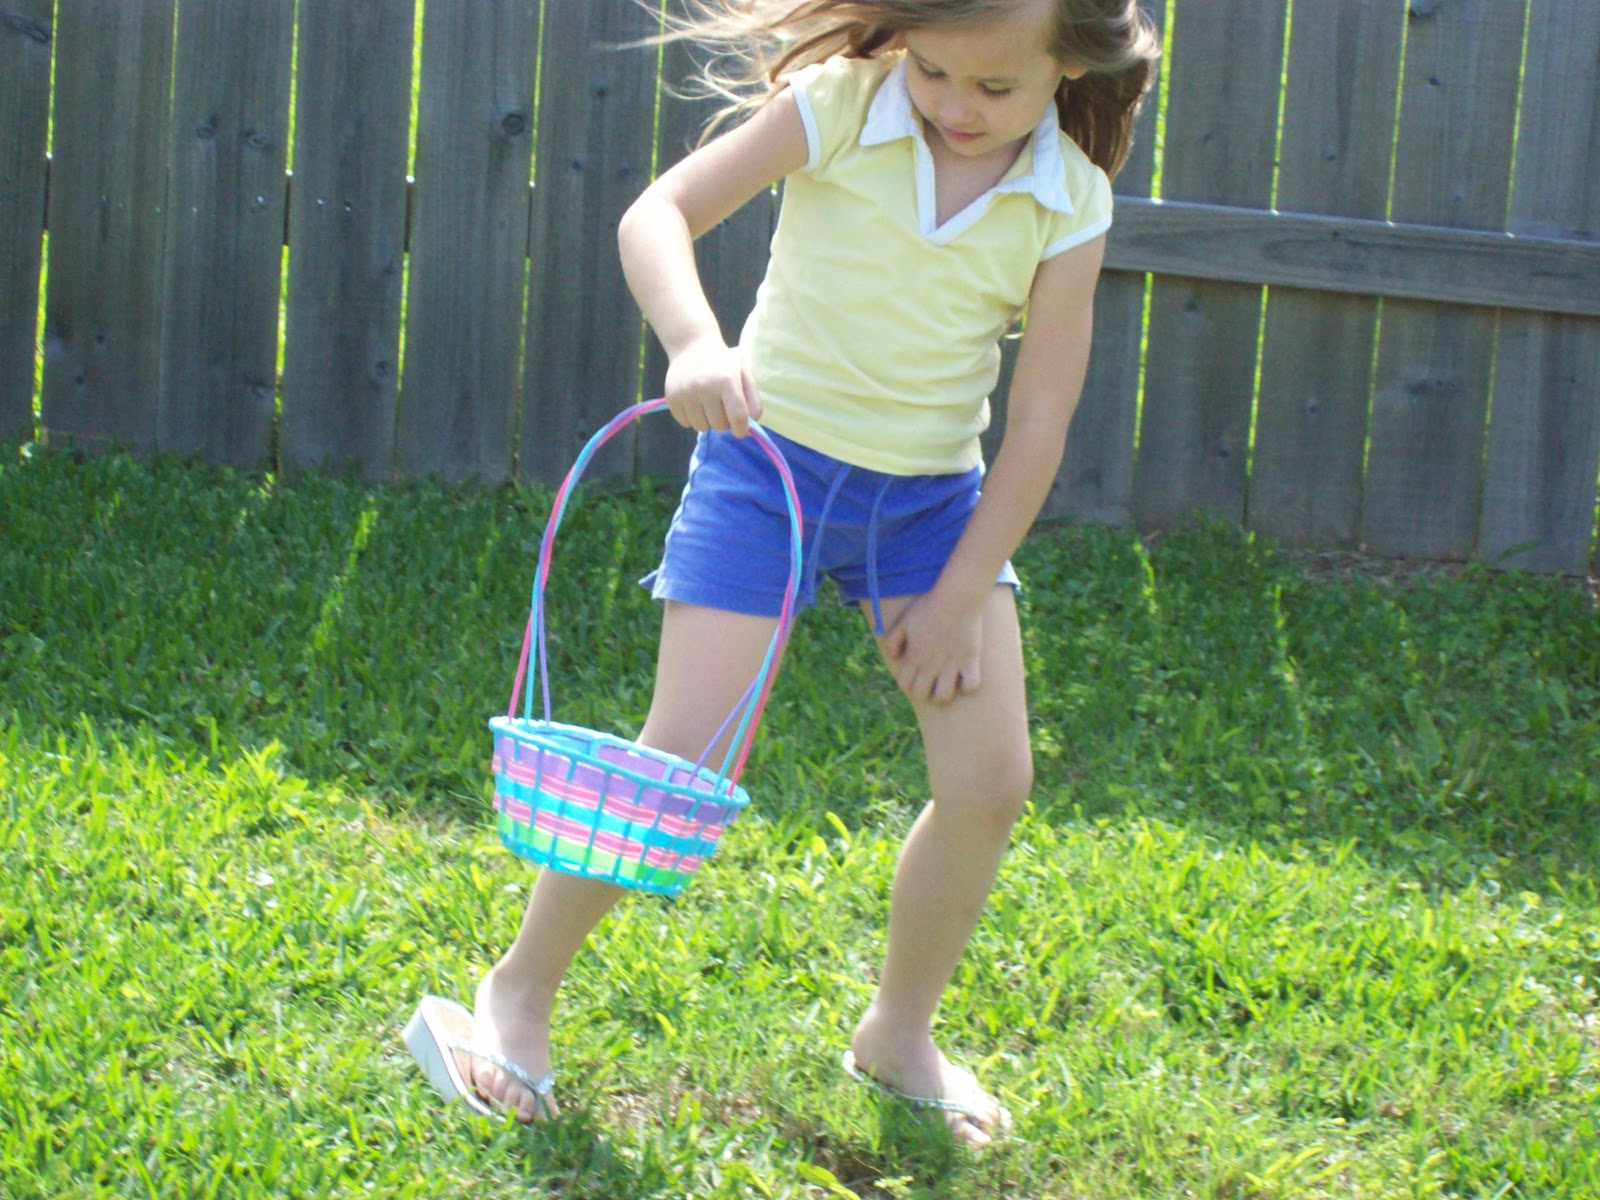 Easter Egg Hunting - 101_2226.JPG